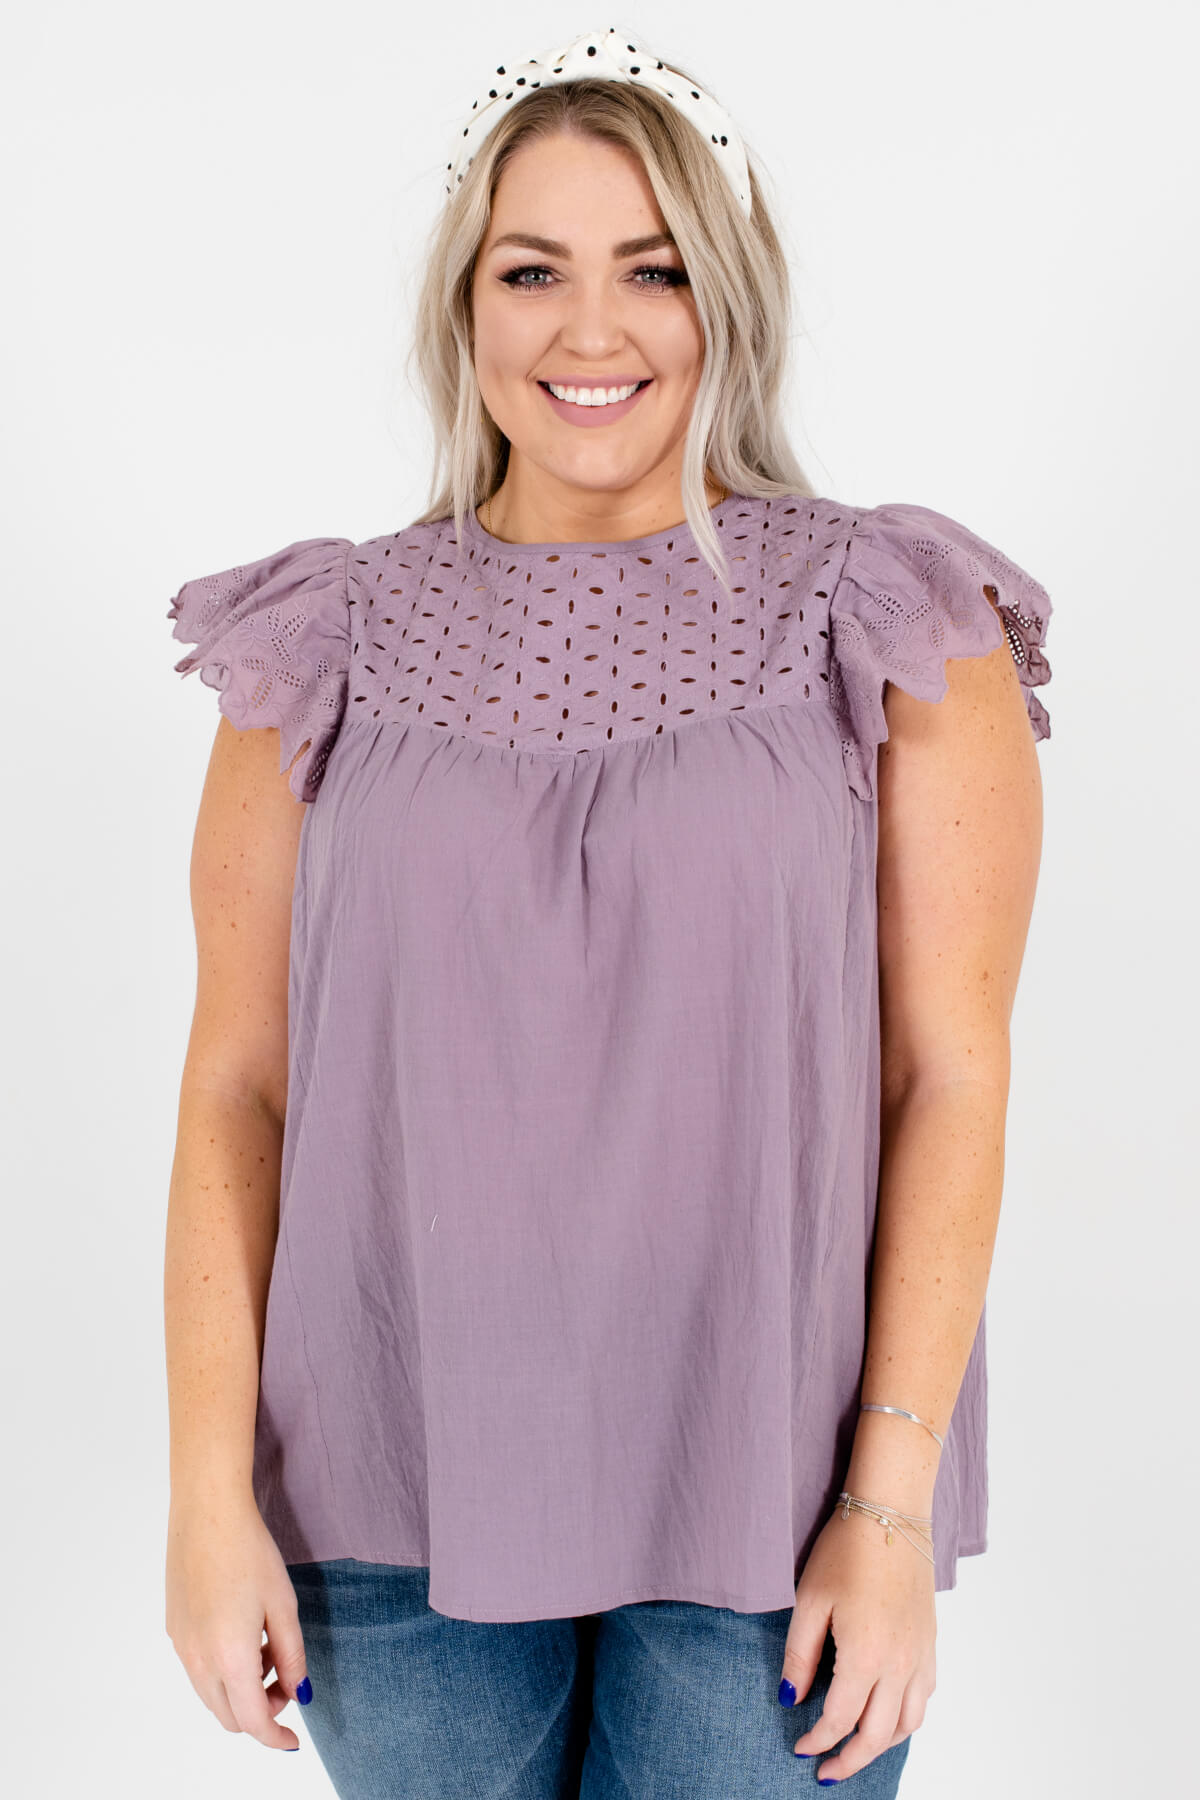 Lavender Purple Eyelet Detailed Plus Size Boutique Tops for Women